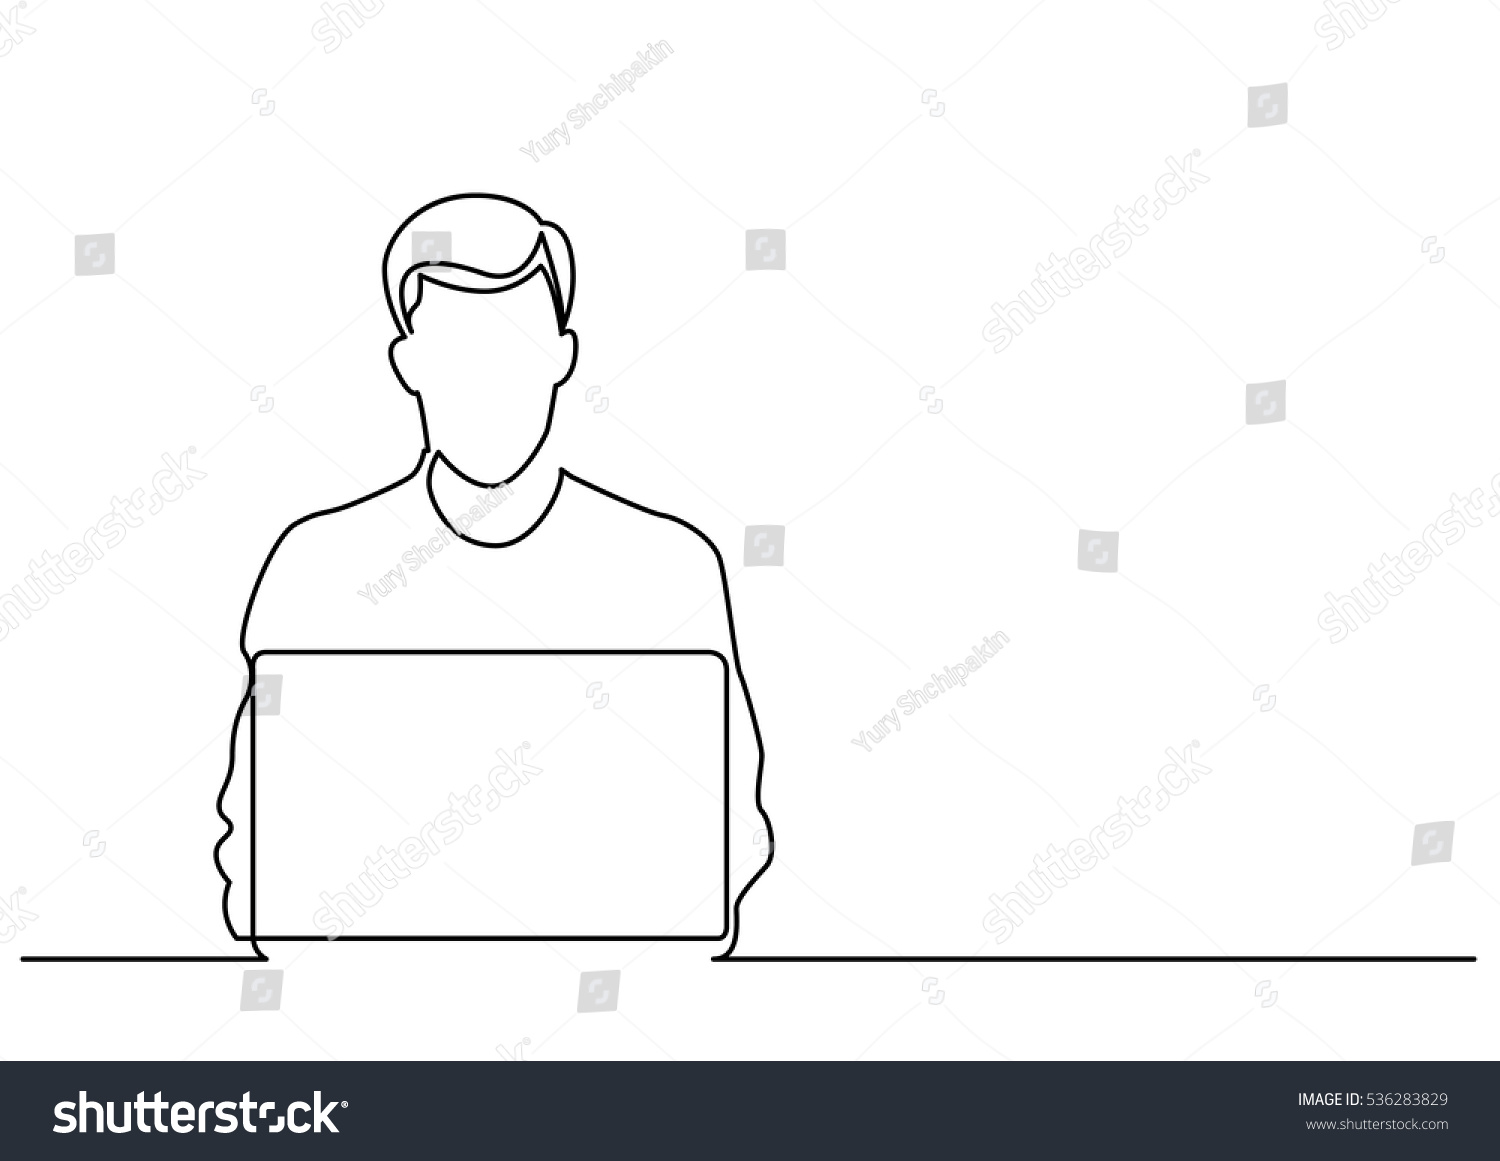 Line Art Man : Continuous line drawing man sitting behind stock vector